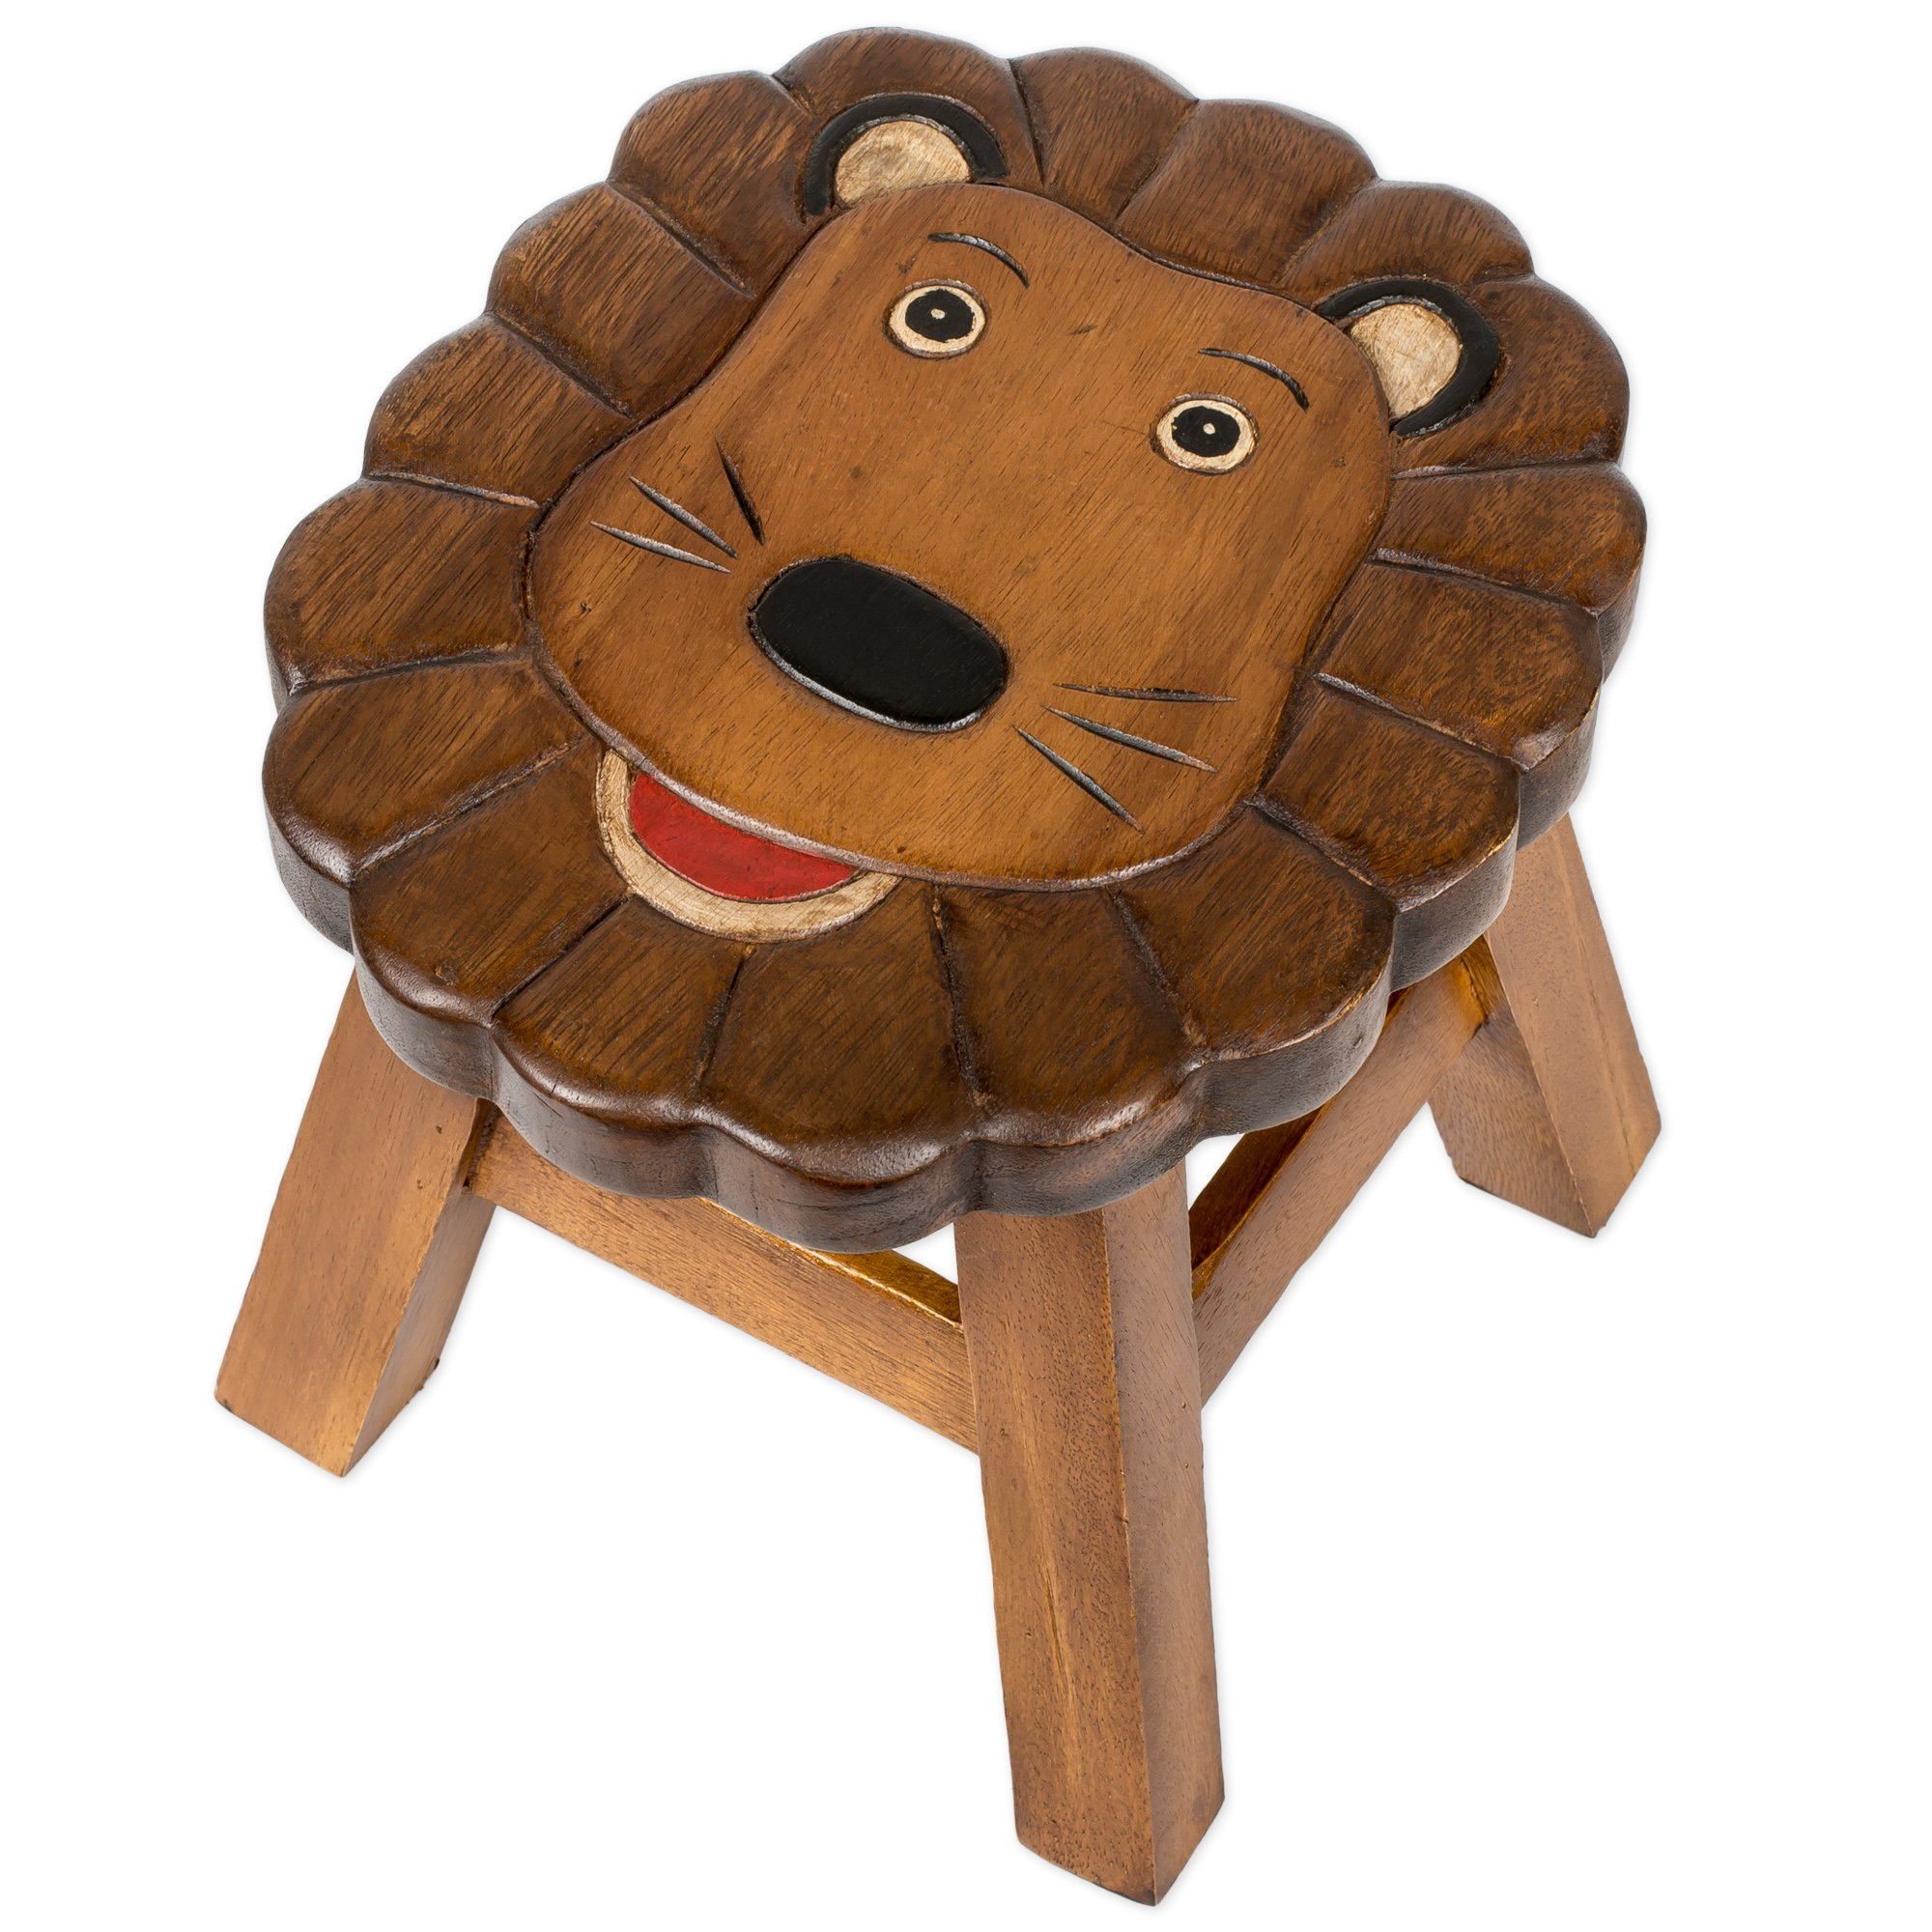 Lion Design Hand Carved Acacia Hardwood Decorative Short Stool by Sea Island Imports